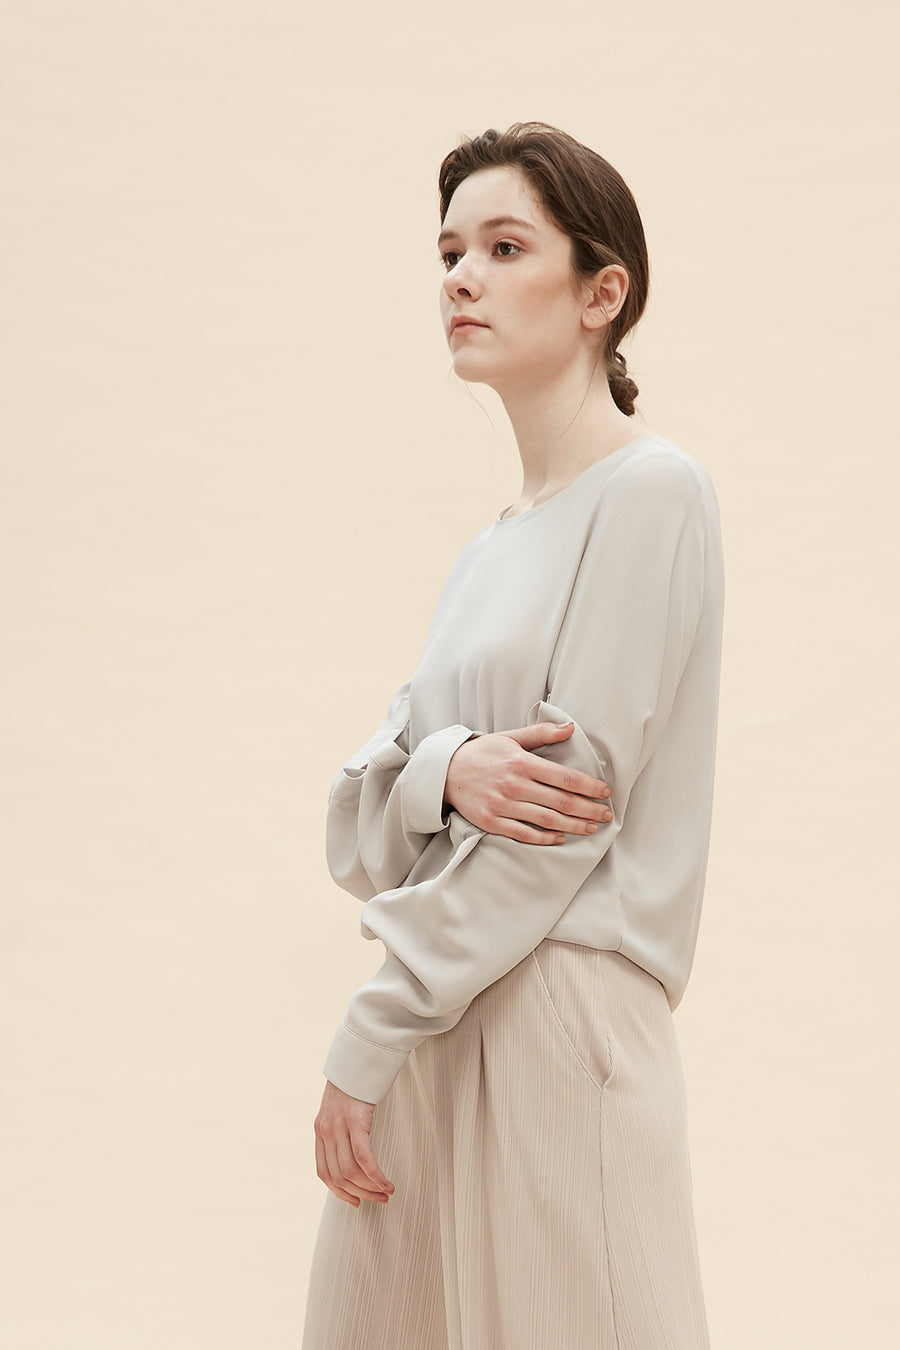 Gladys - Chiffon Blouse With Sleeves Of Folds - Zelle Studio